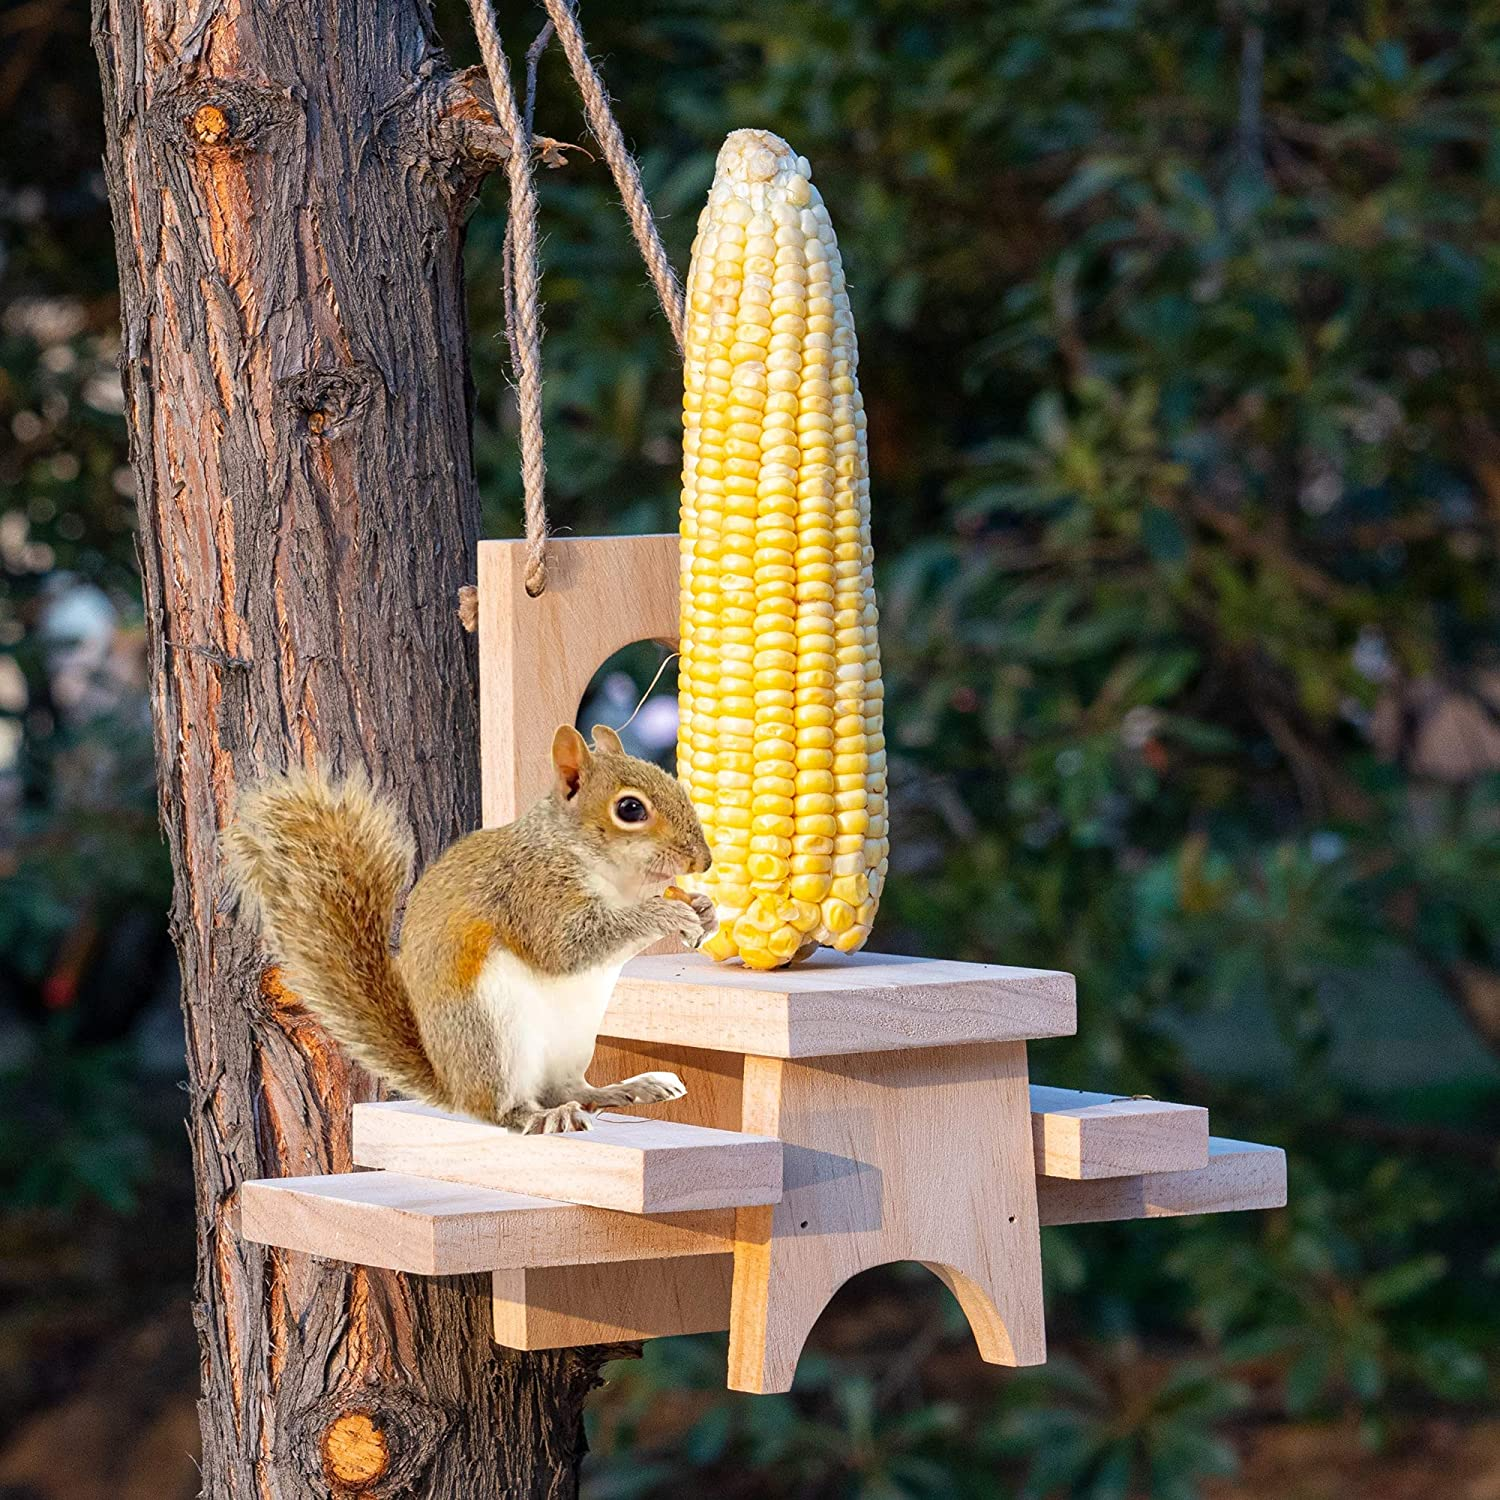 FUNPENY Wooden Squirrel Feeder for Outside, Outdoors,Hanging Squirrels Picnic Table Chipmunk Bench Feeders House with Corn Holder for Outdoor,Garden,Yard